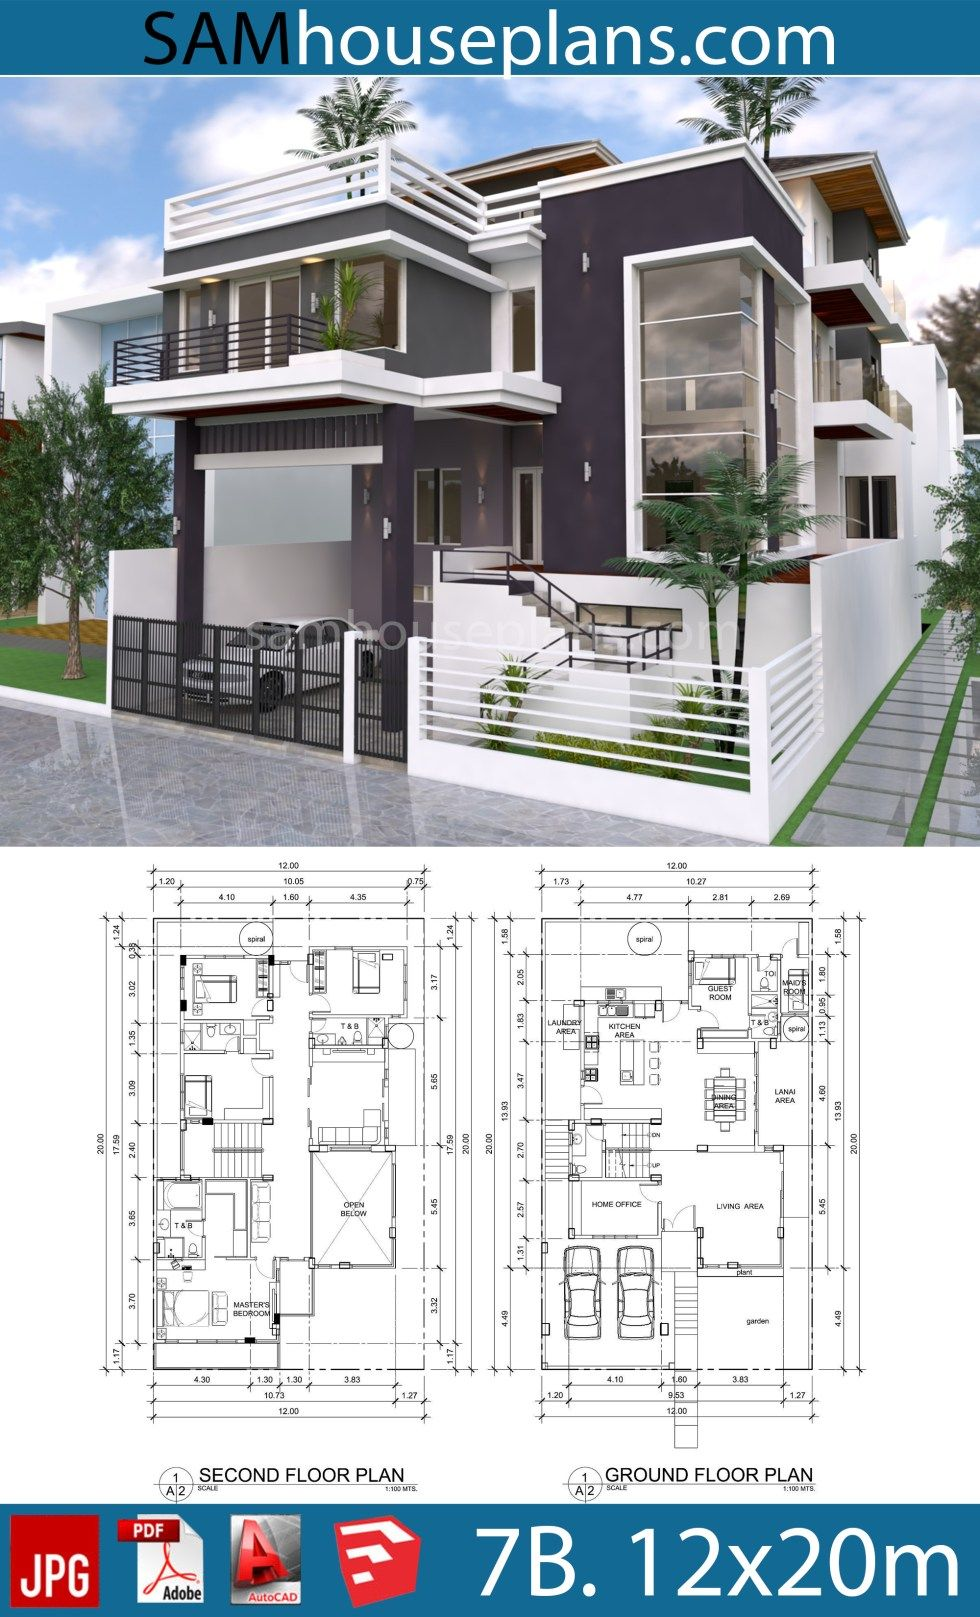 House Plans 12mx20m With 7 Bedrooms In 2020 Architectural House